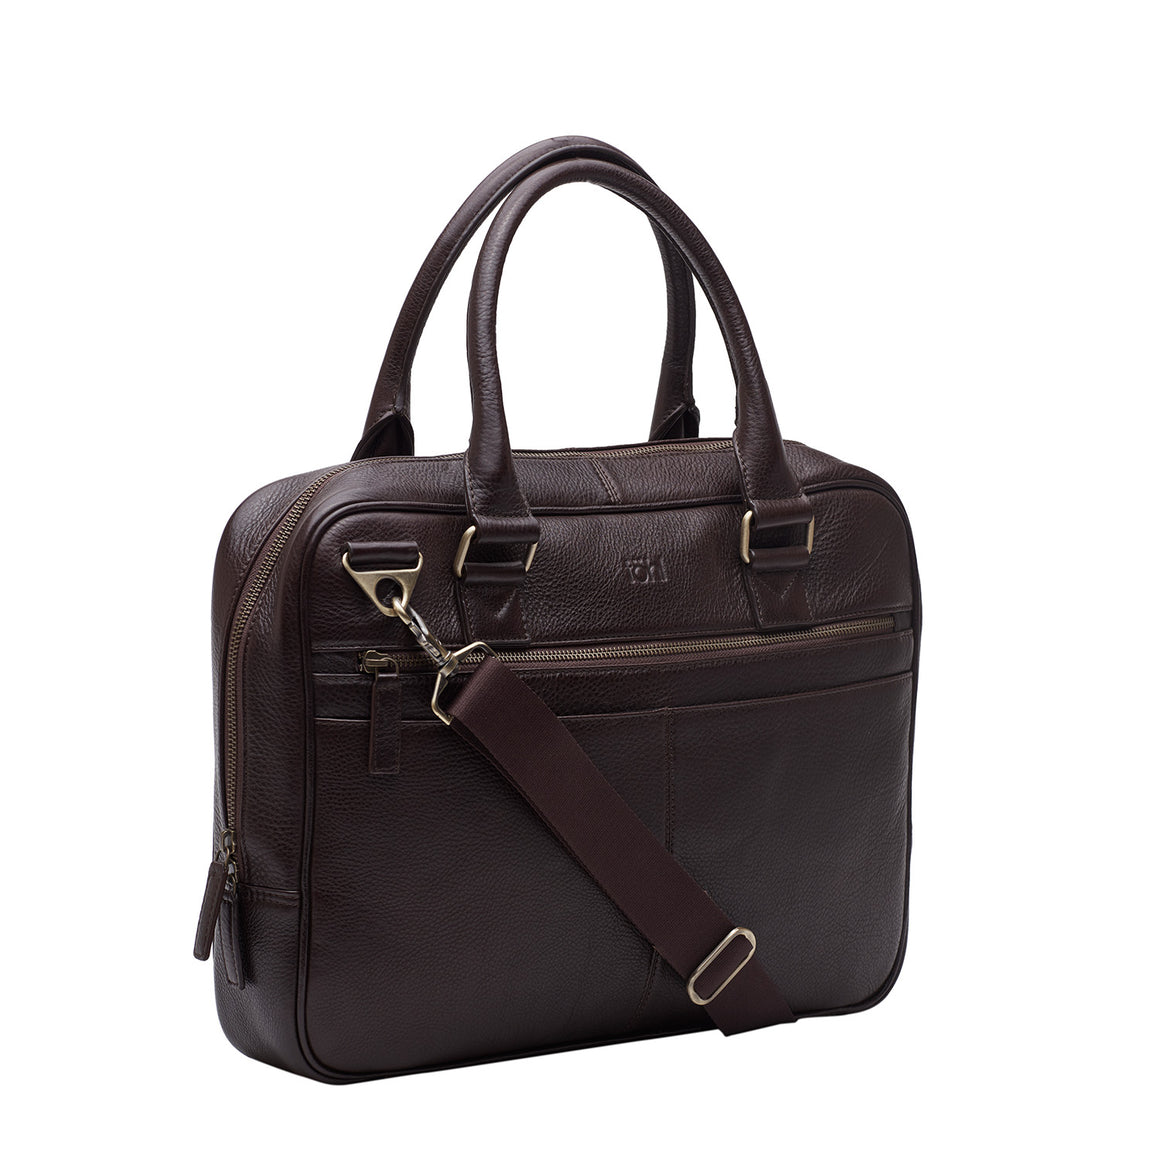 LB 0003 - TOHL SANTI MEN'S LAPTOP BAG - T MORO